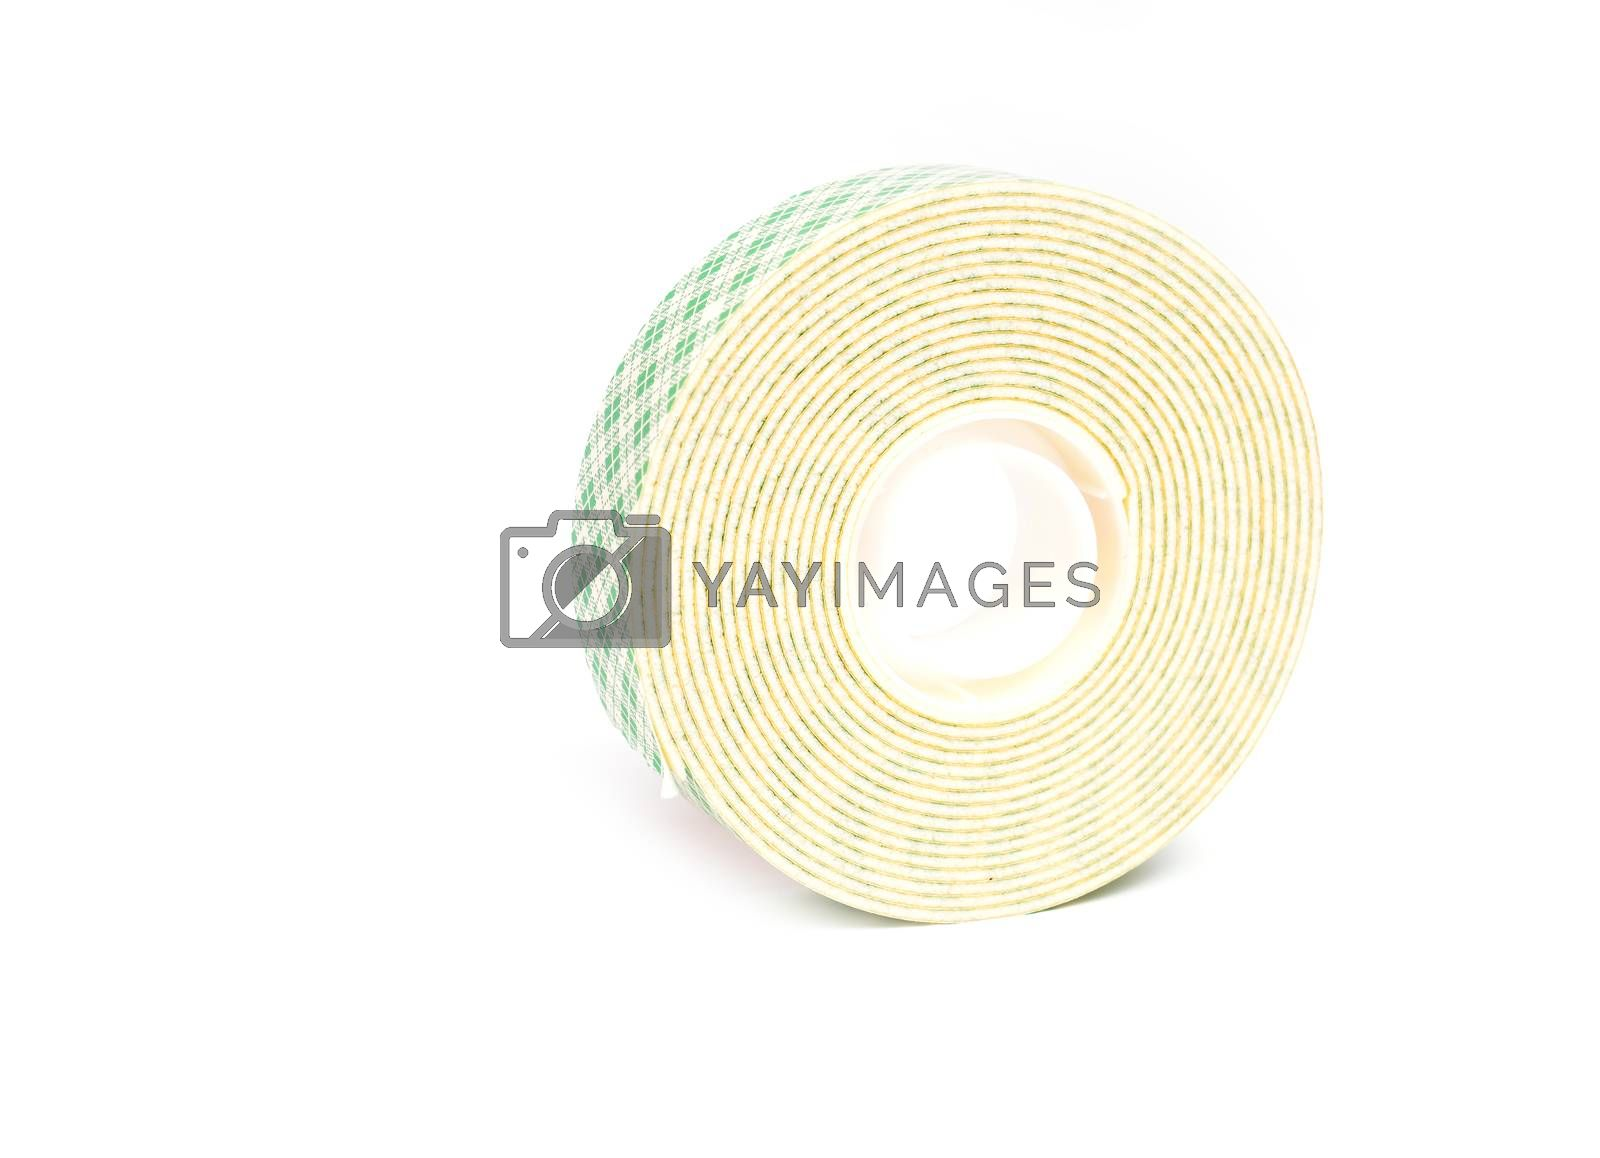 Royalty free image of double sided tape by anankkml